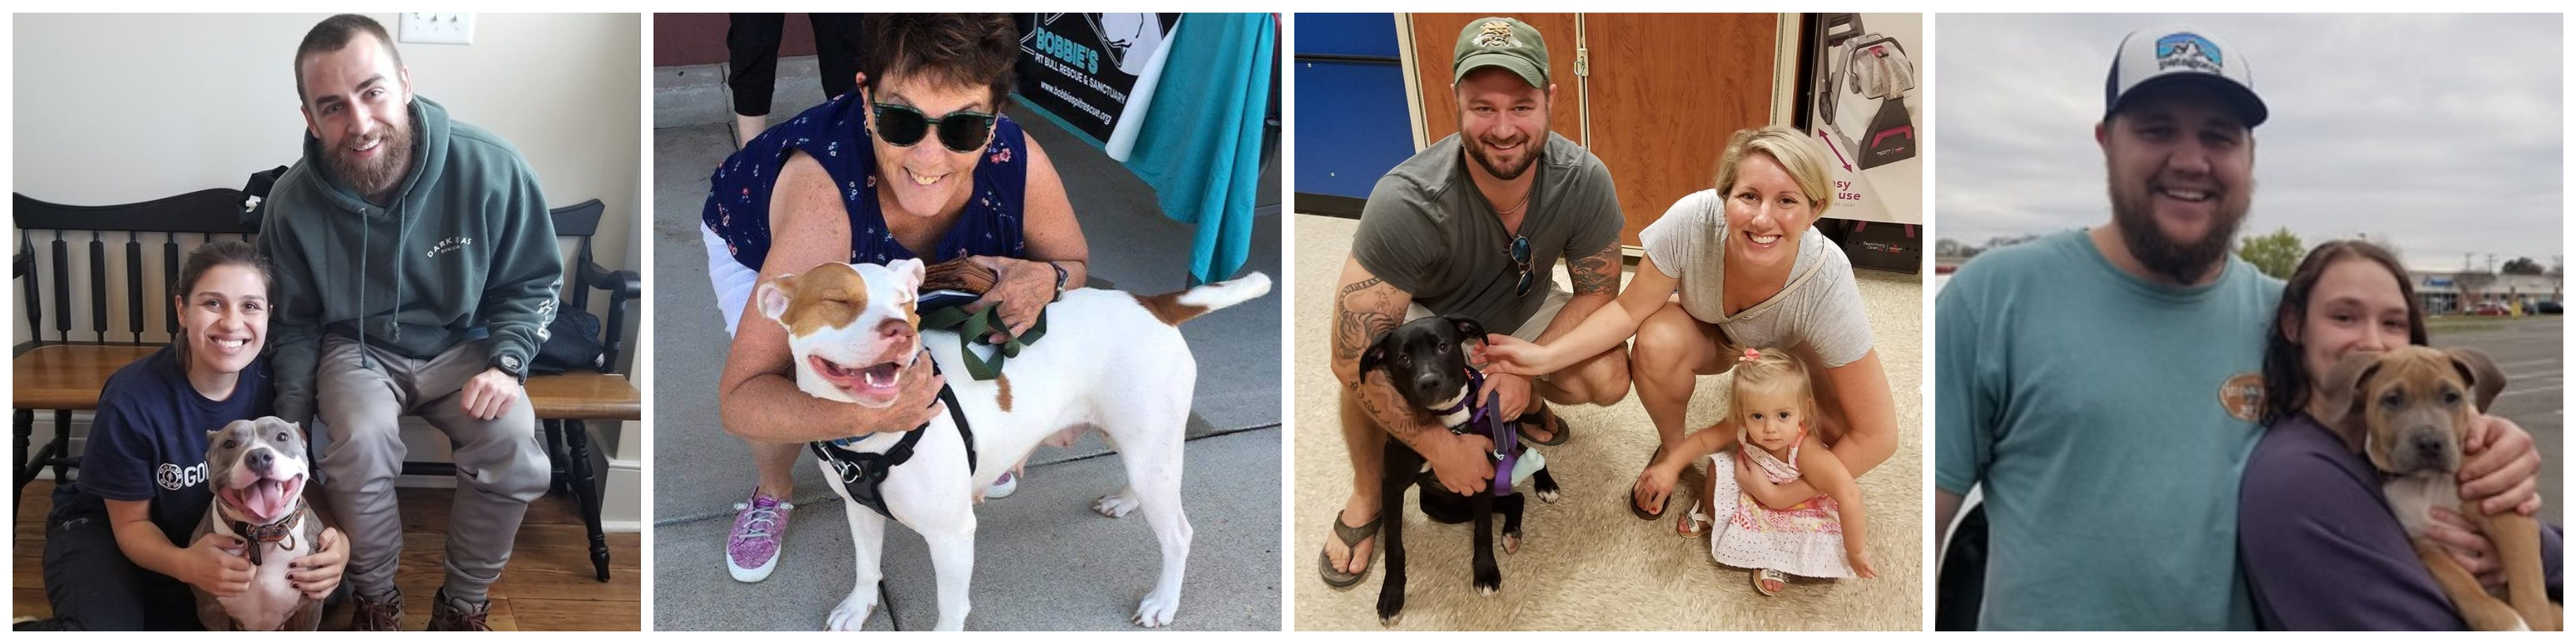 Adopters with Dogs